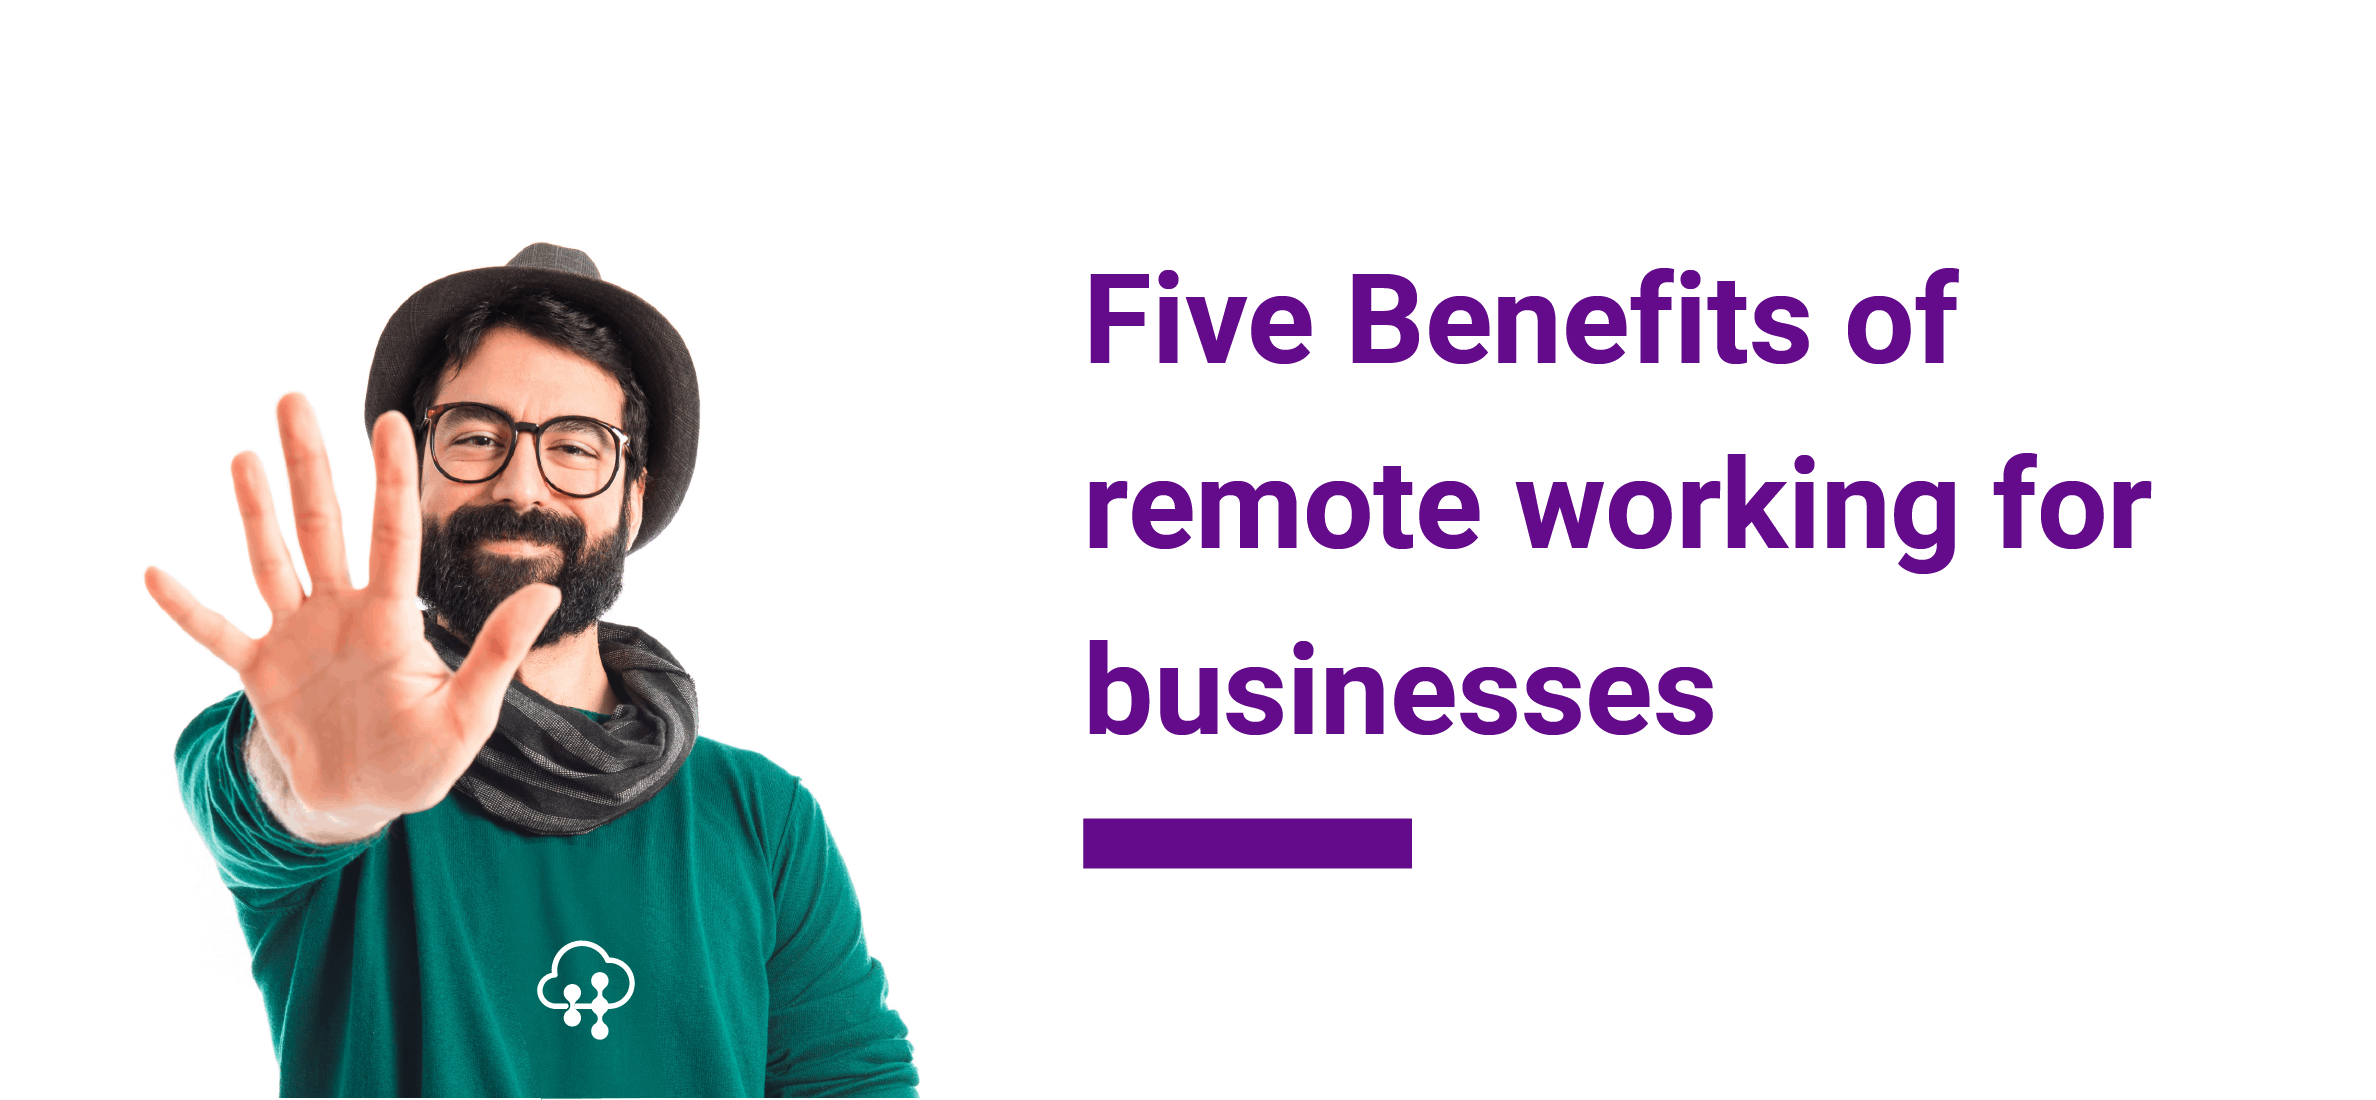 Five Benefits of remote working for businesses